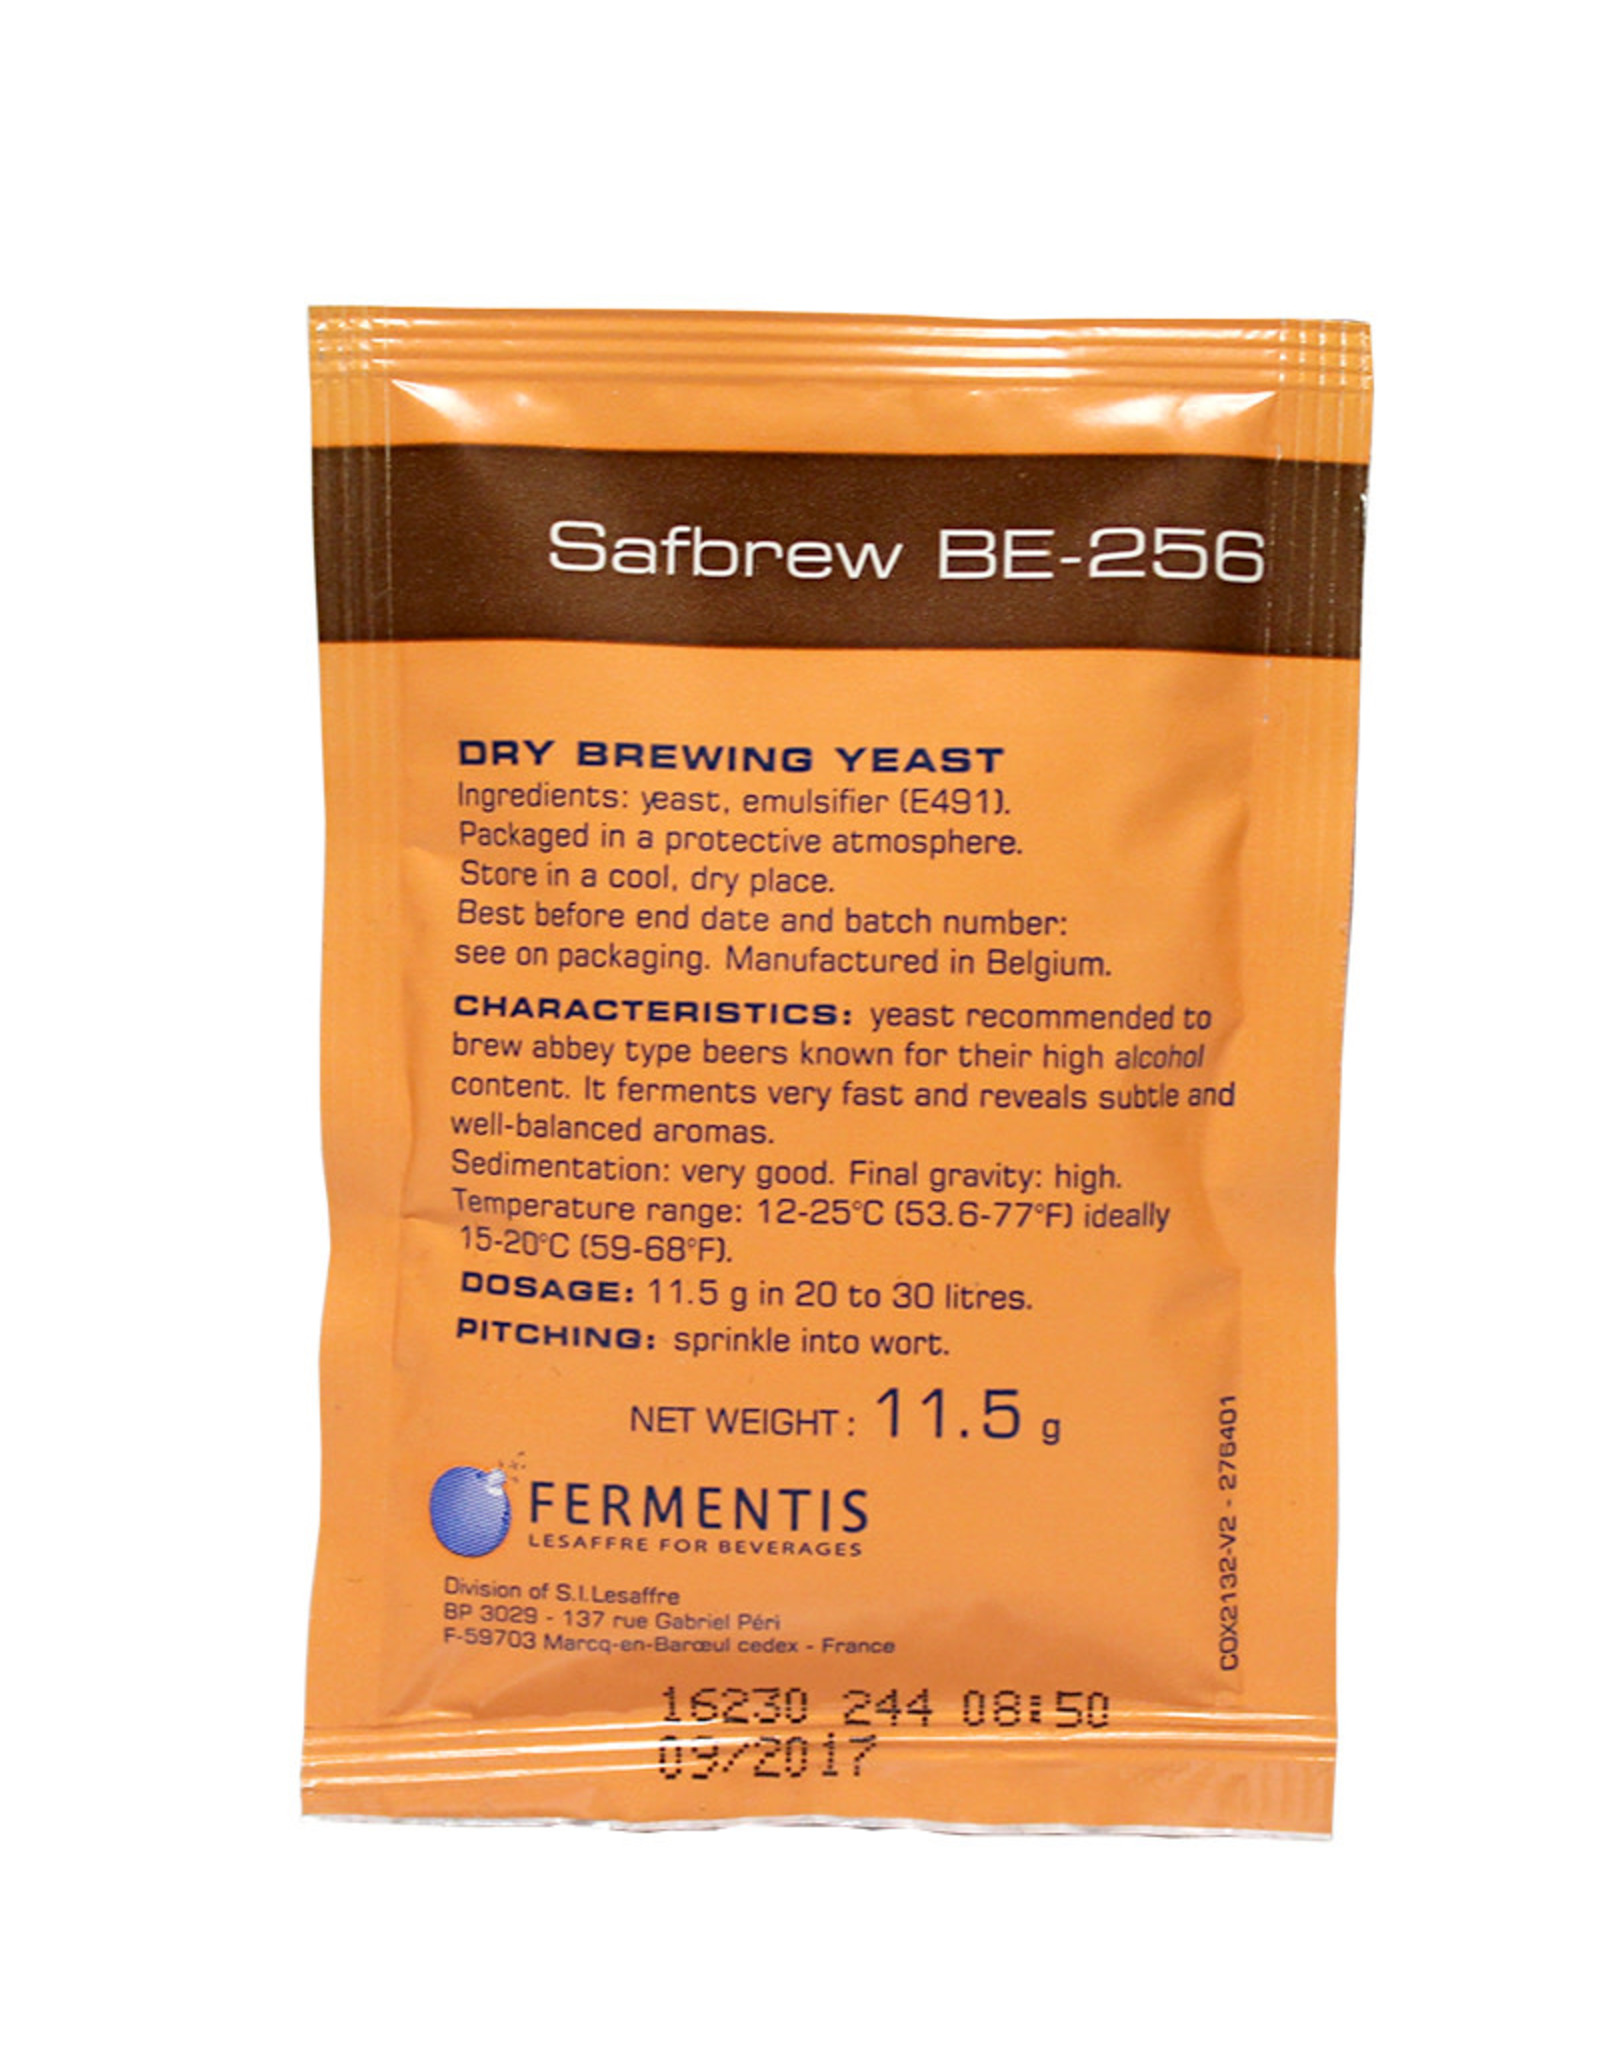 Safbrew BE-256 Dry Brewing Yeast